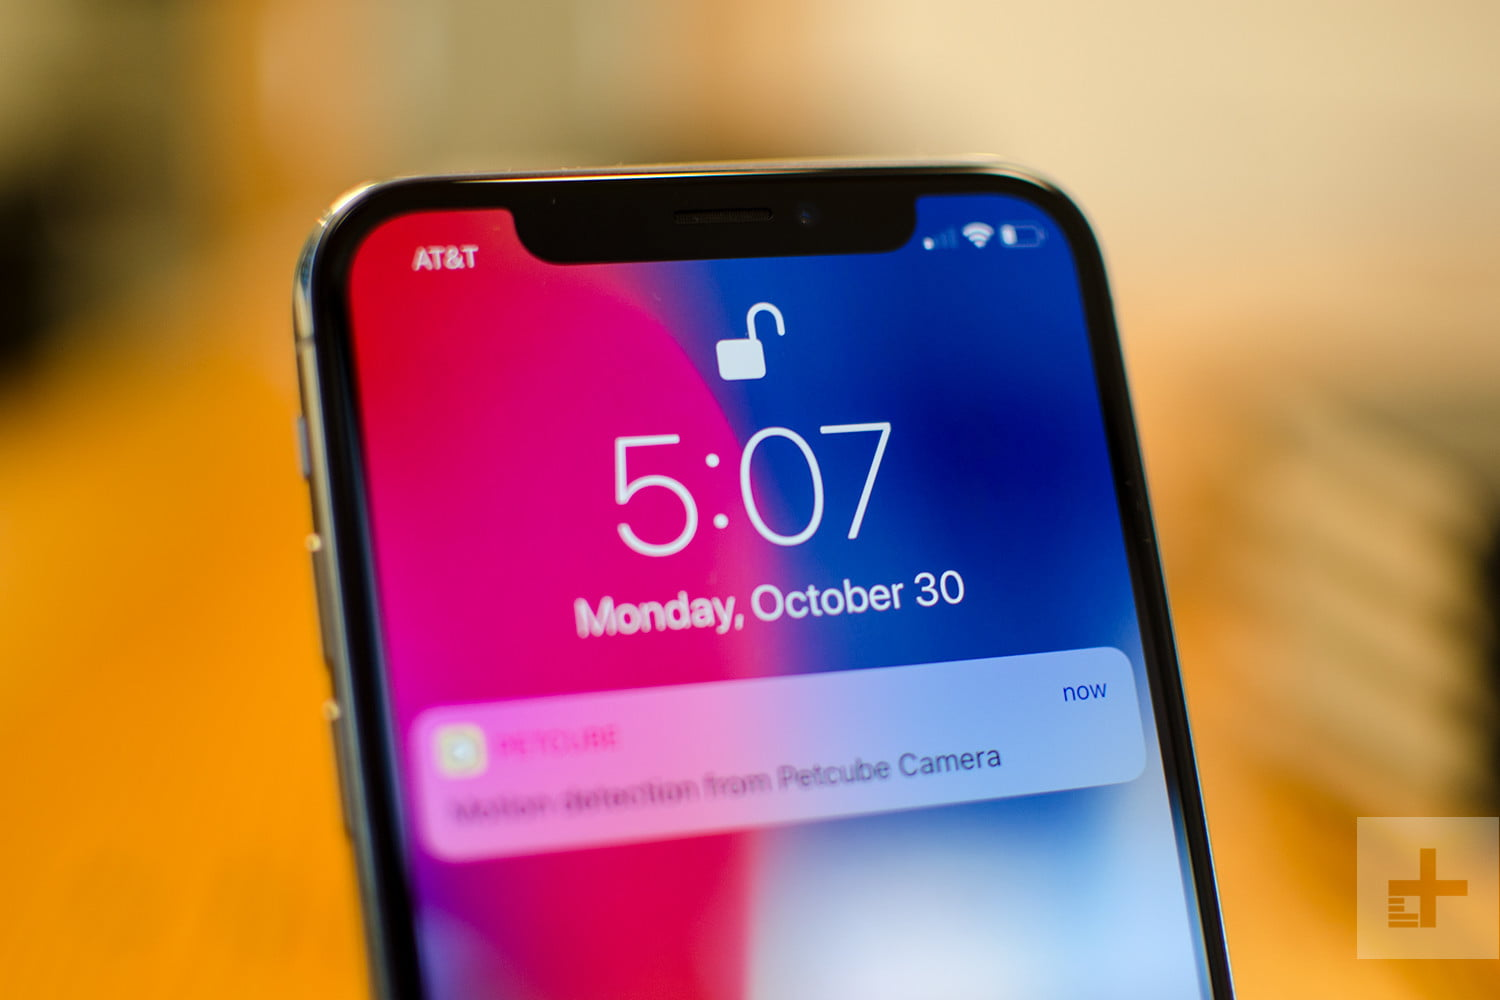 Apple Iphone X Explained Features Price Specs And More Digital Download Image Cell Phone Charger Circuit Diagram Pc Android Review